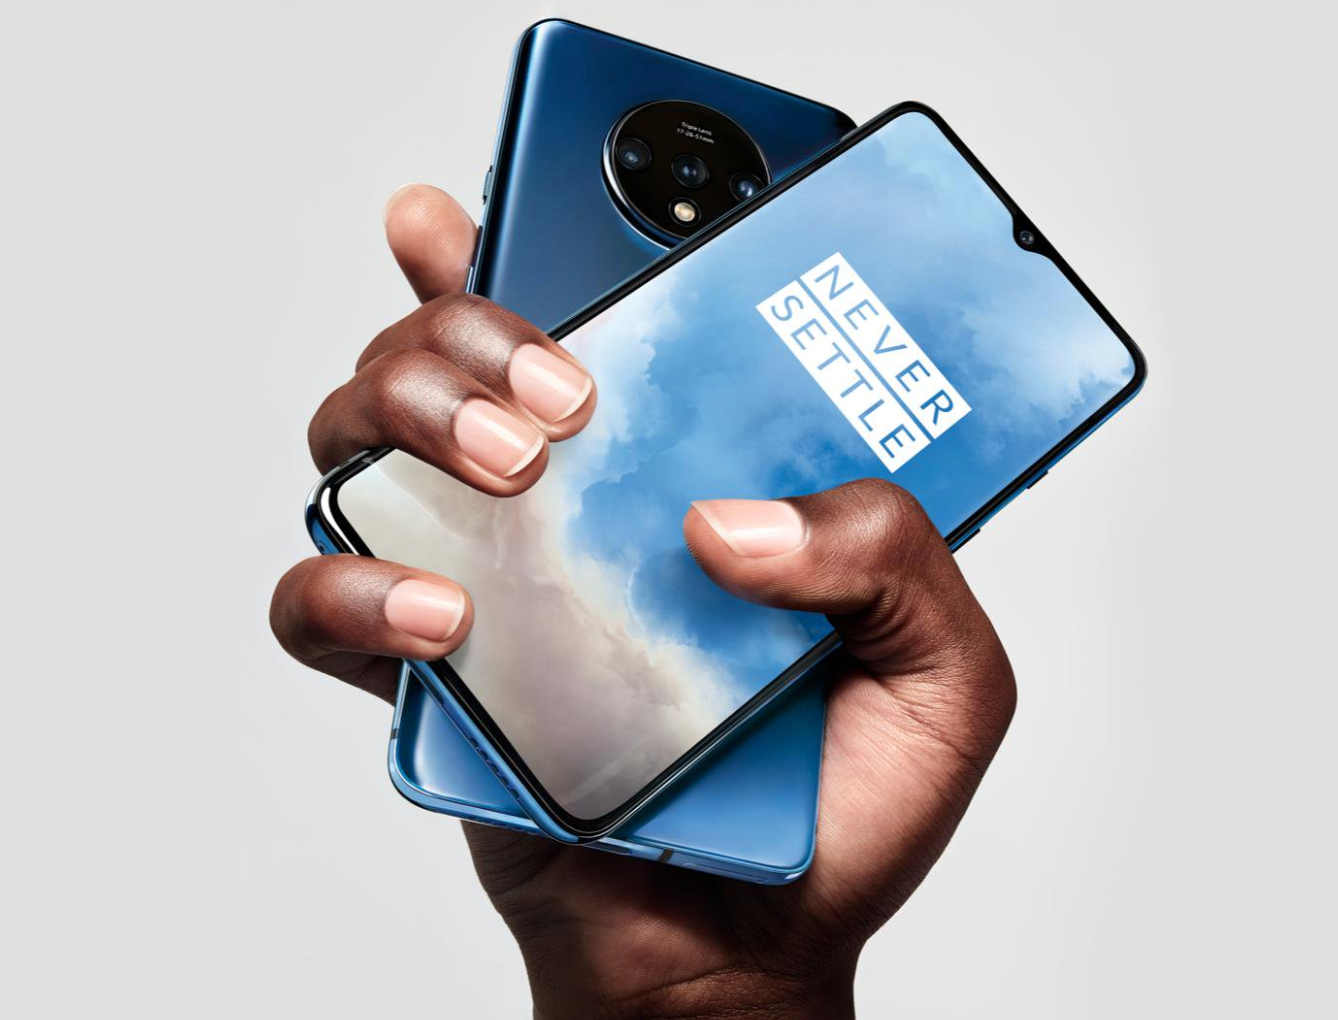 OnePlus 7T Pro, OnePlus 7T Pro McLaren Edition launch event: Live highlights - Latest News | Gadgets Now